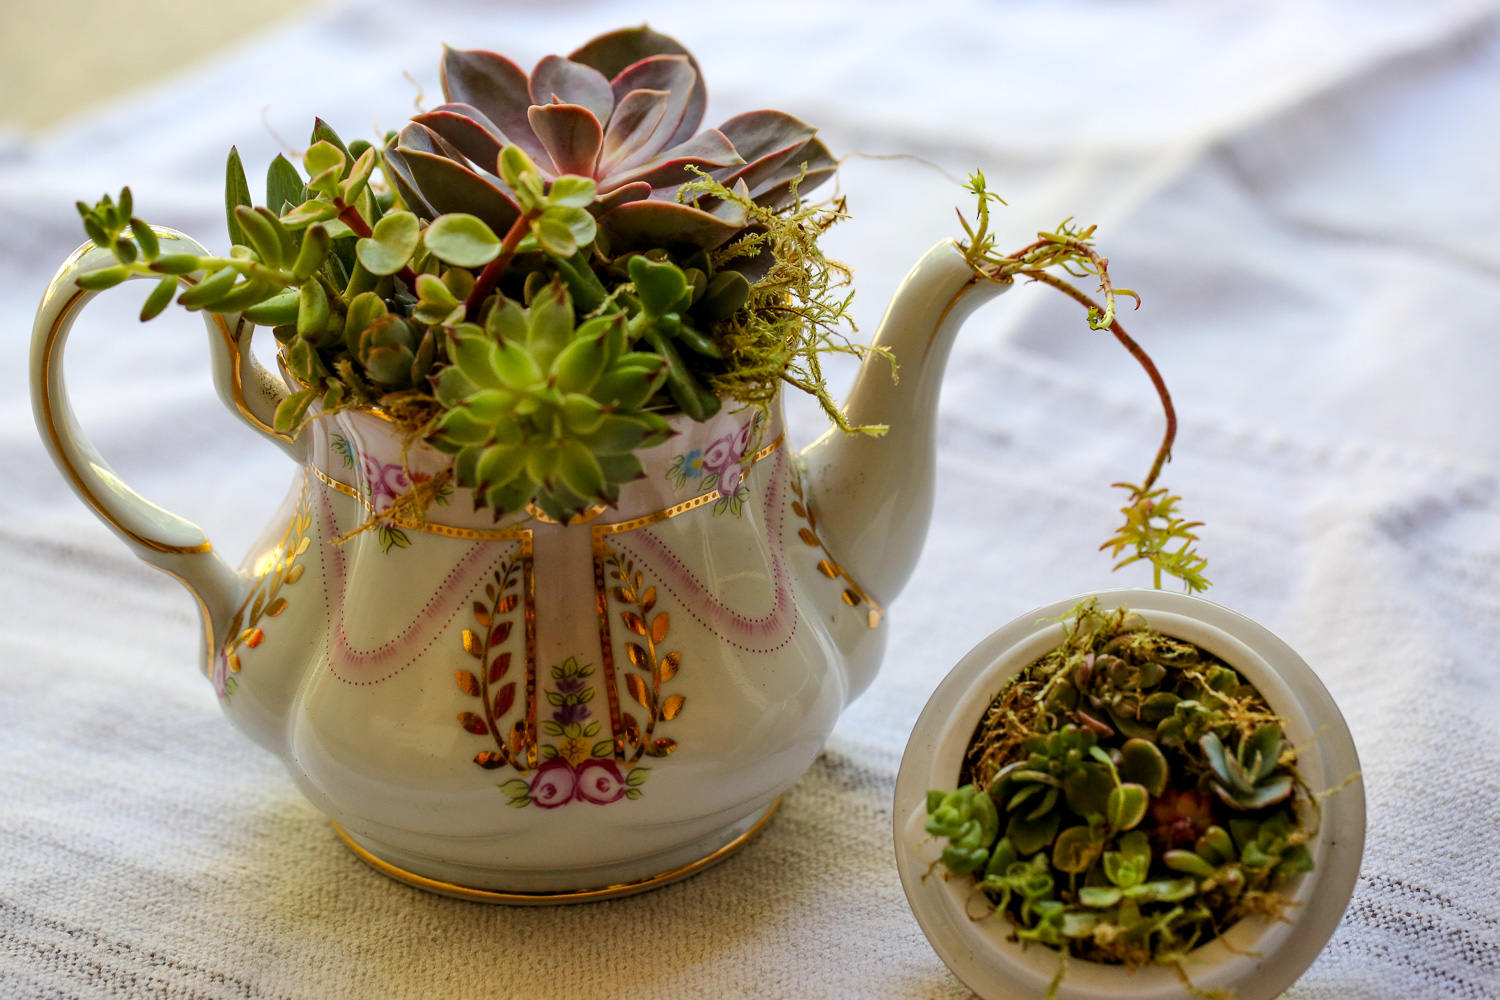 Original_Caughey-MelissaCaughey-succulent tea party 3